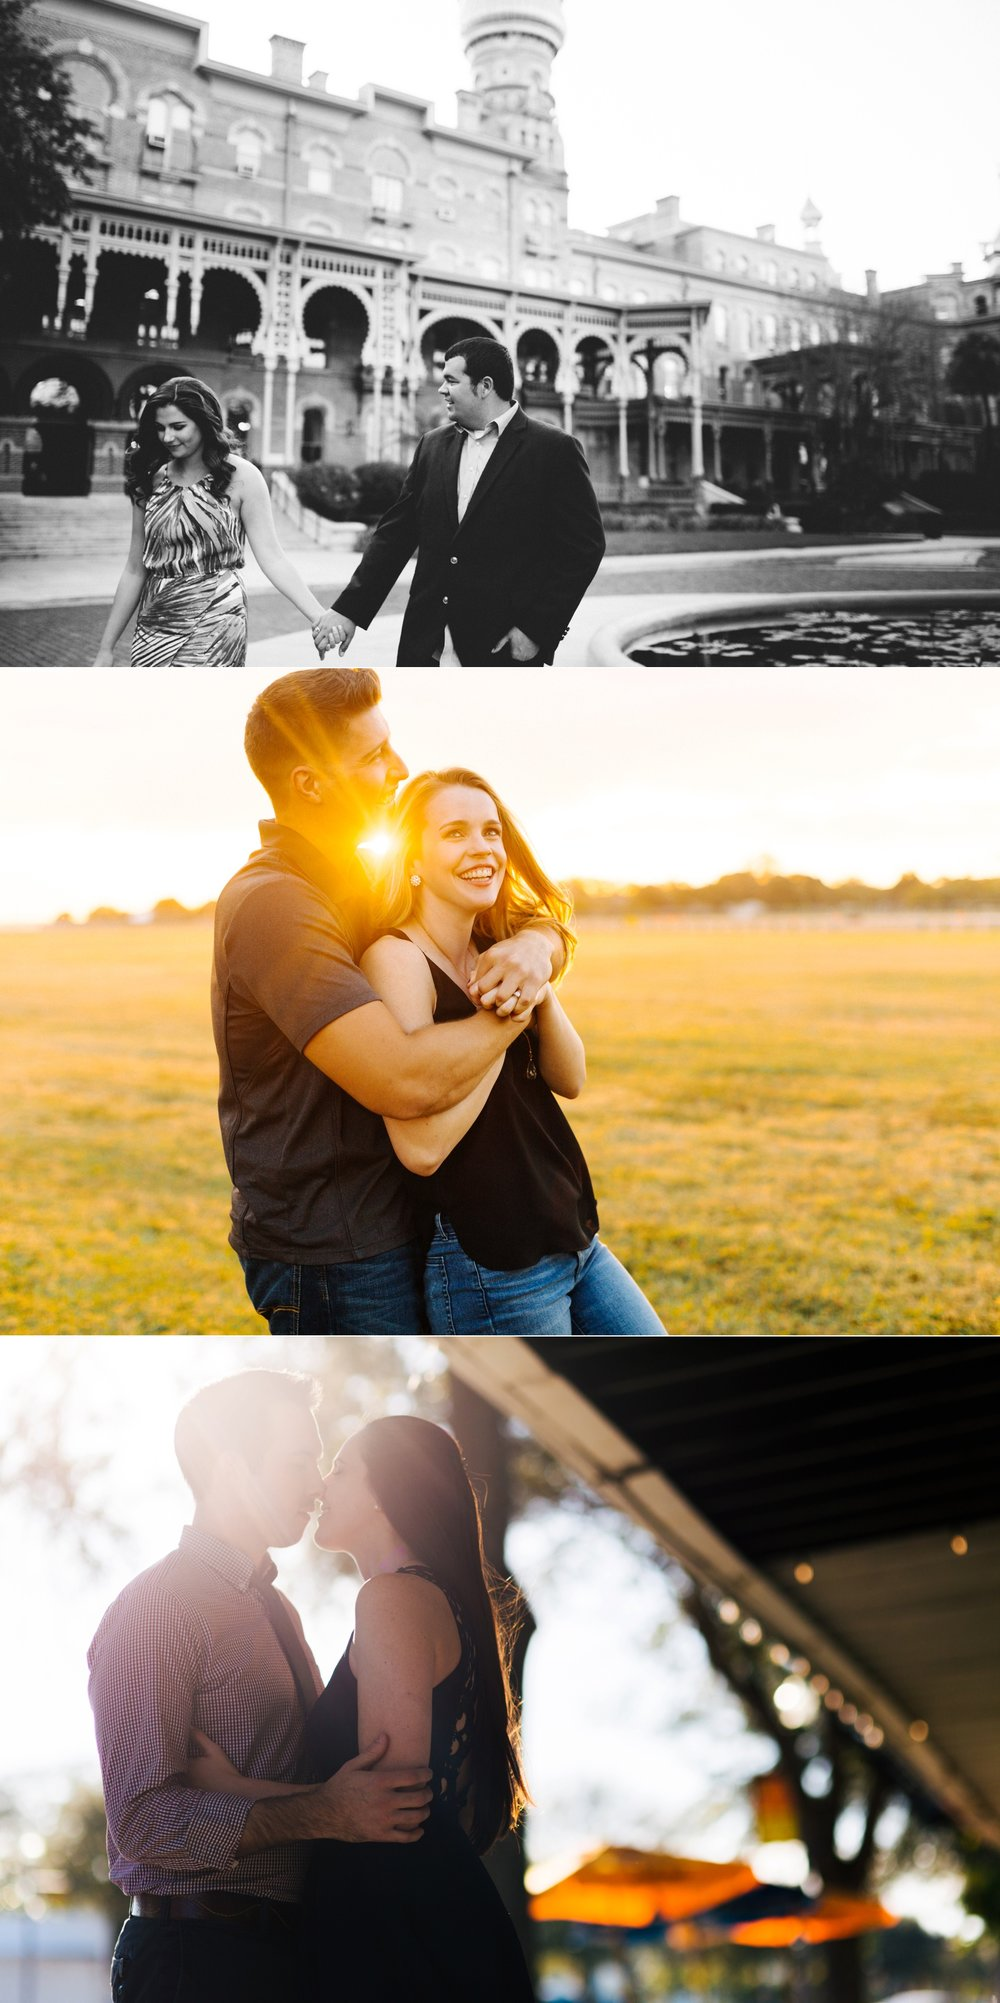 Jake & Katie Photography Best of Couples 2016-063.jpg